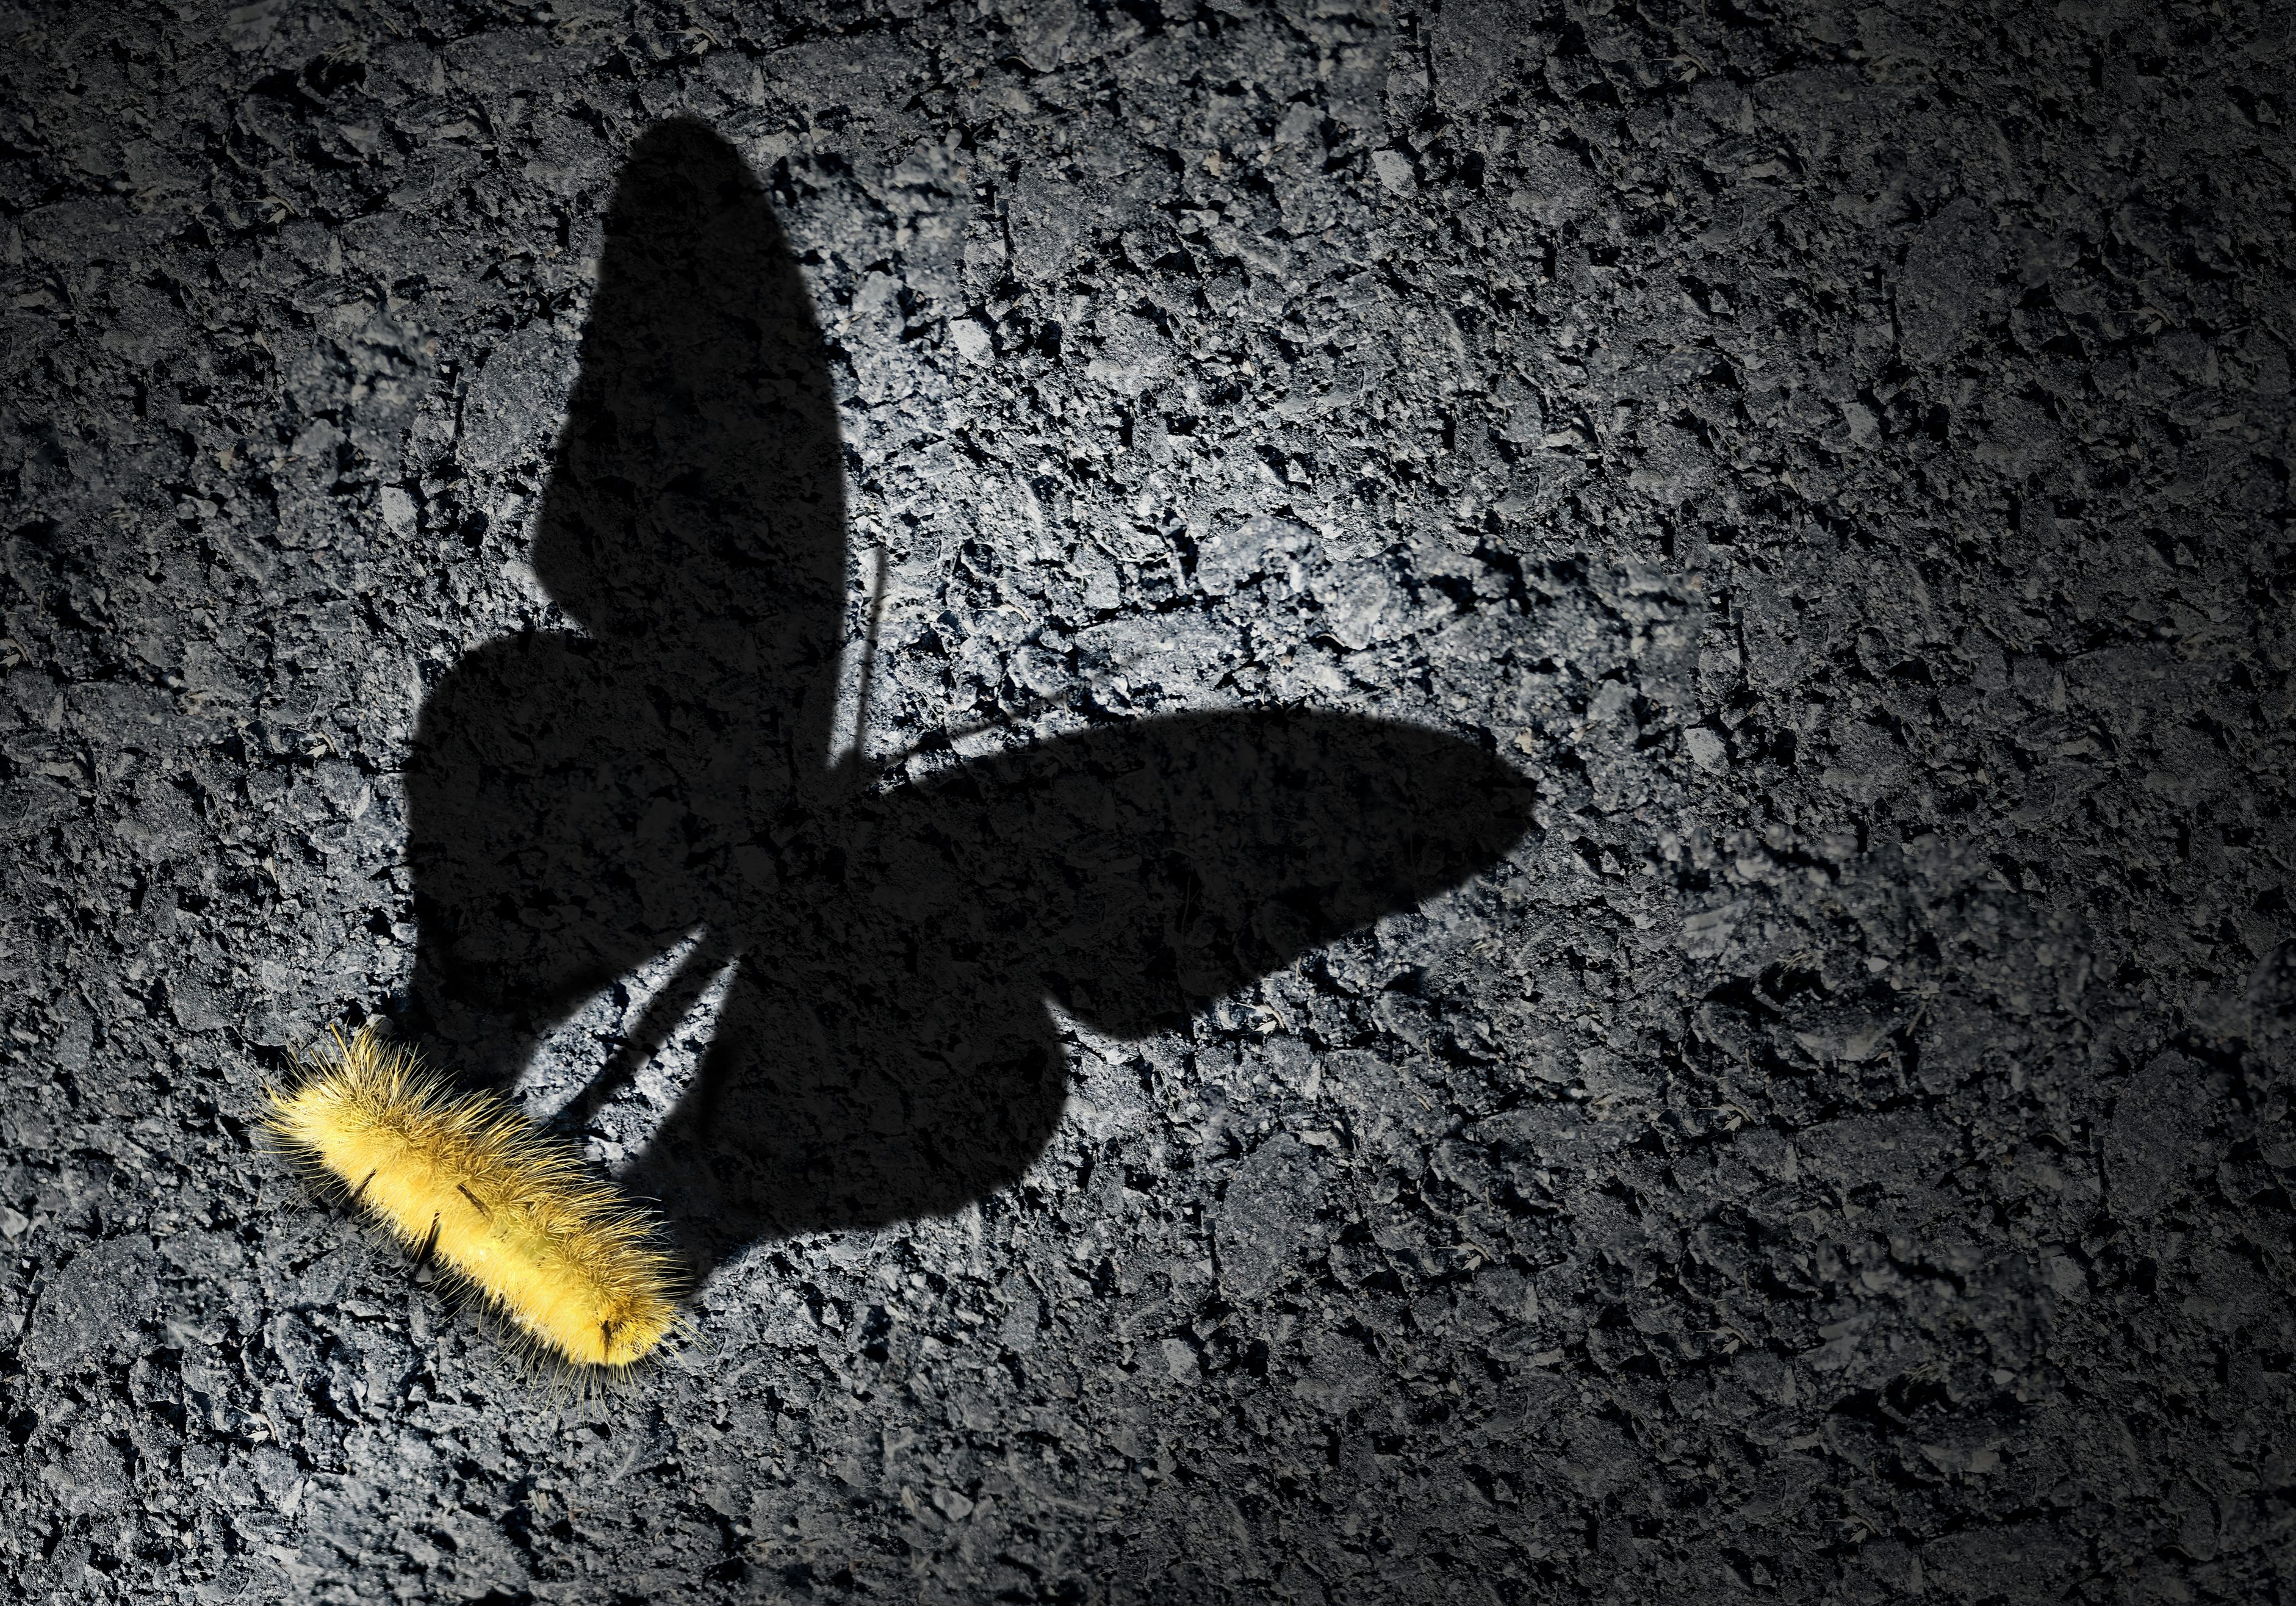 Aspiration concept and ambition idea as a caterpillar casting a shadow odf a butterfly as an achievement and hope for futur success symbol with 3D illustration elements.